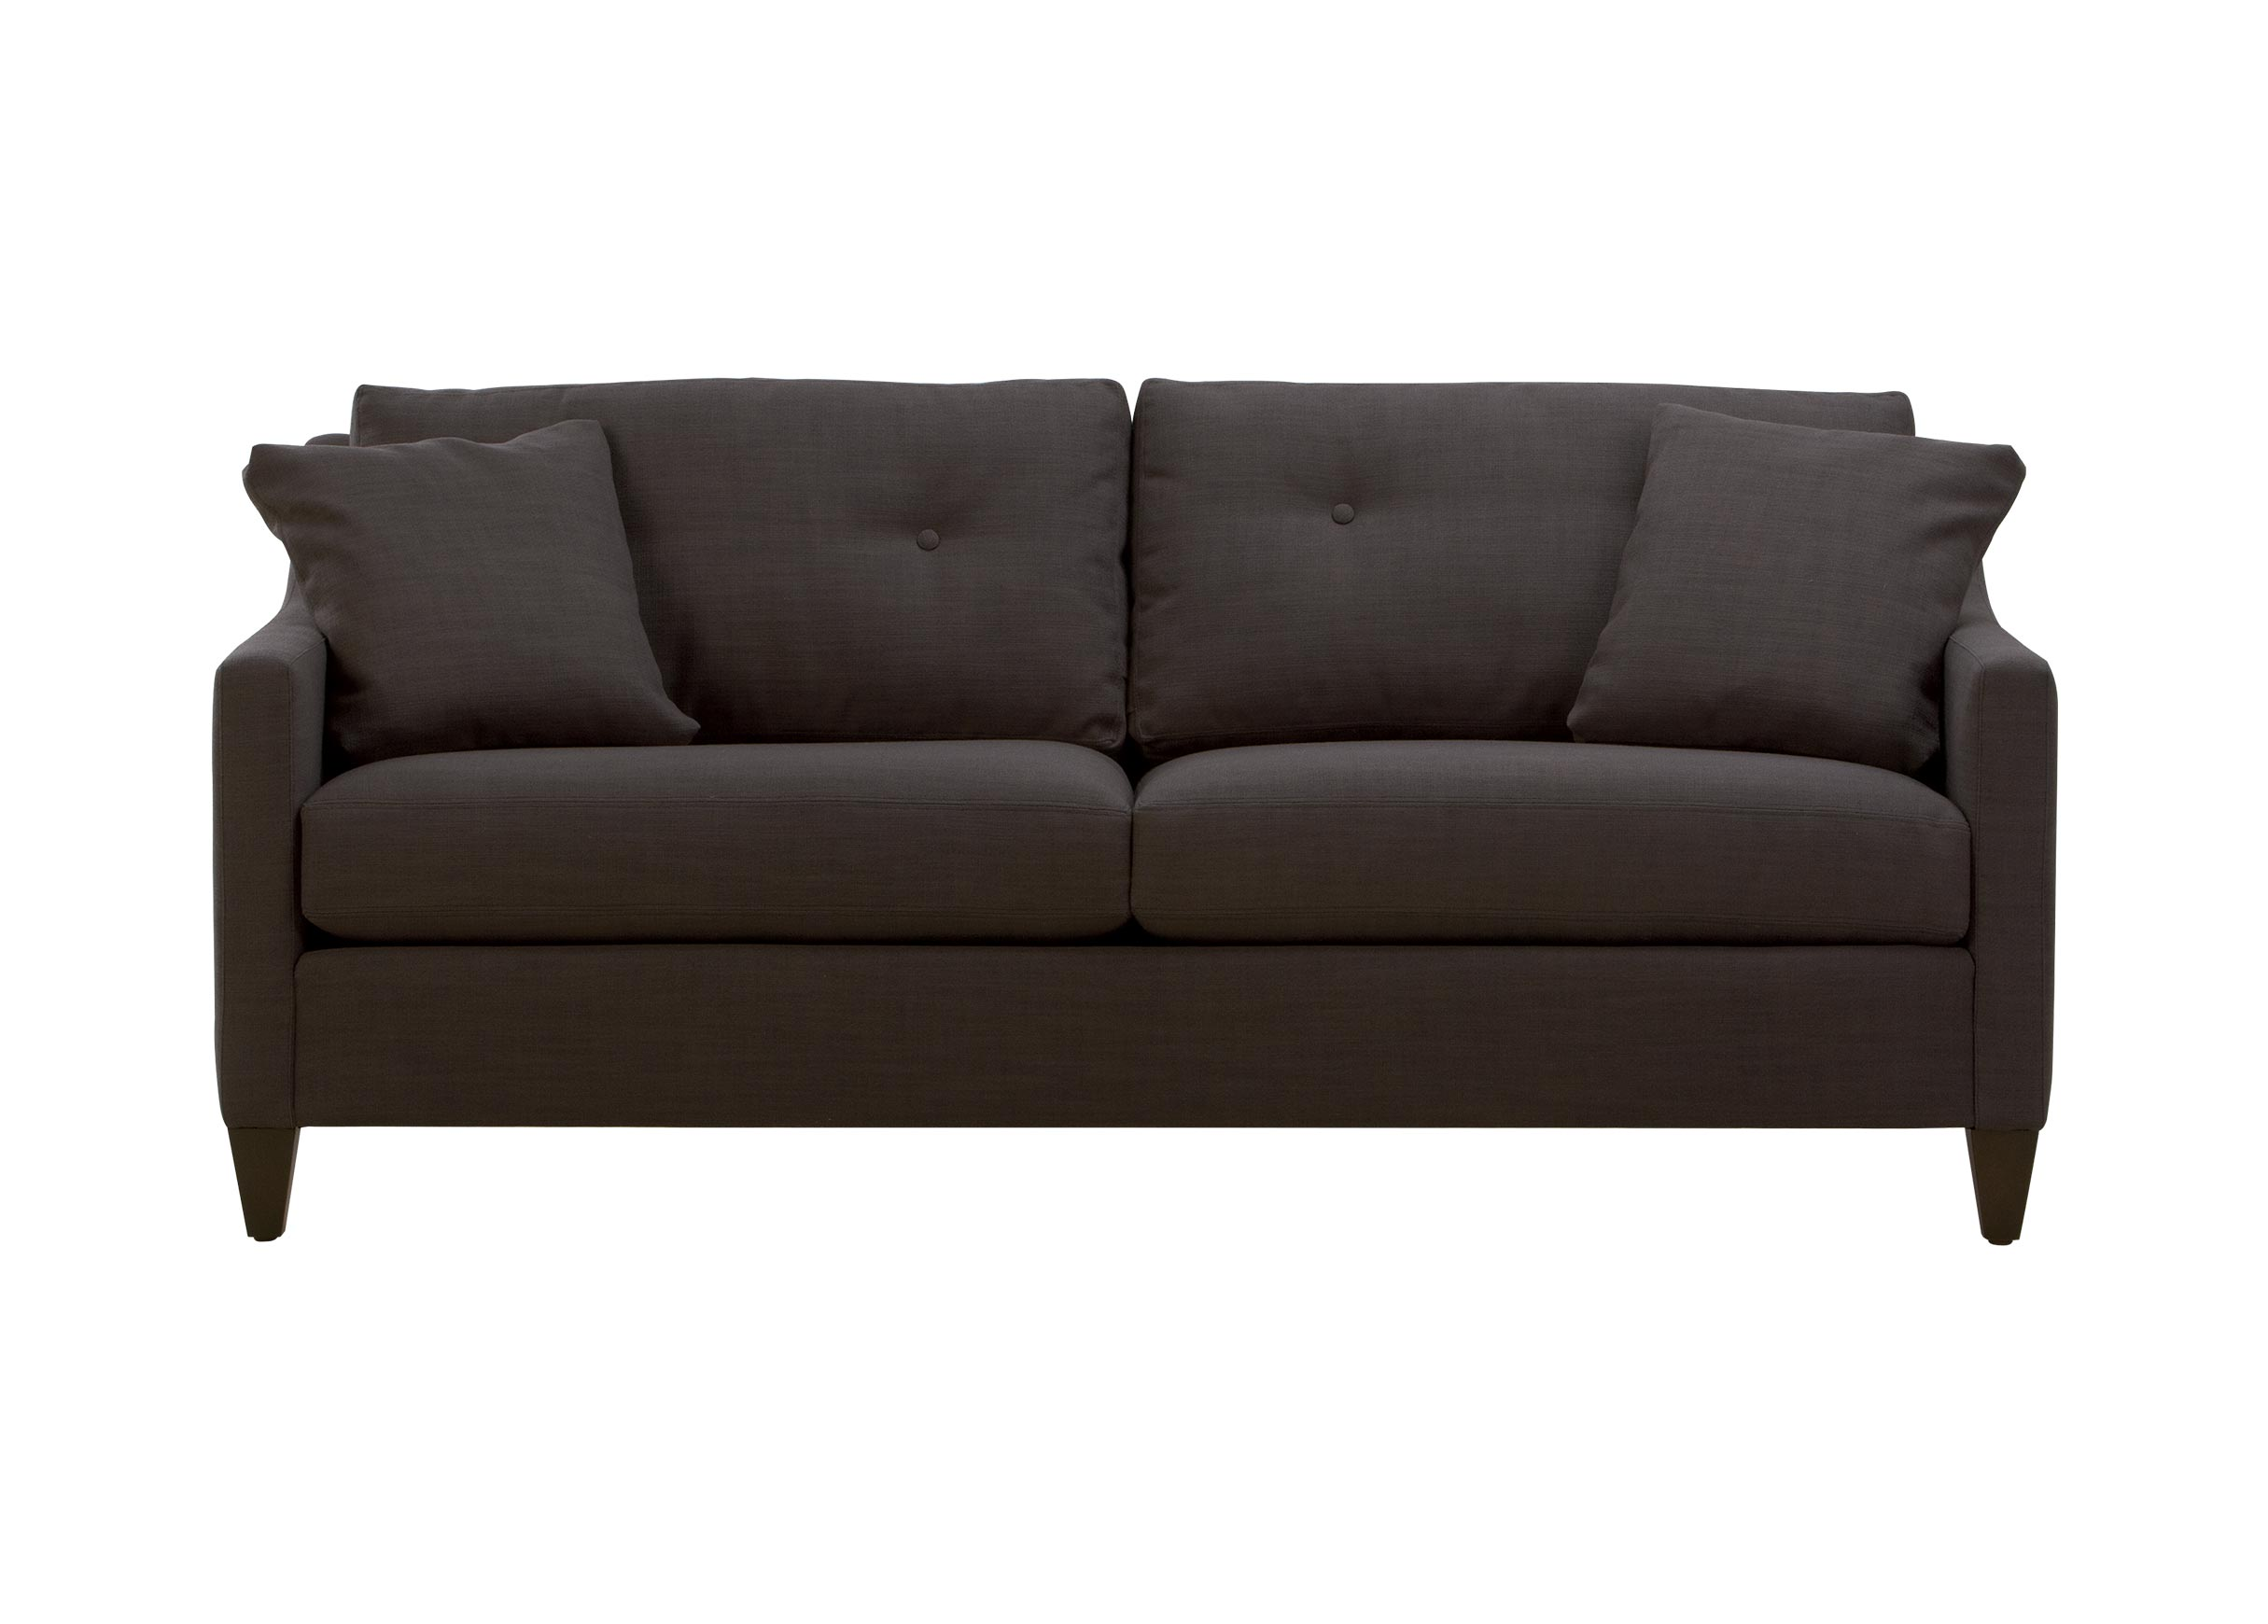 sofa furniture store four seat bed monterey sofas and loveseats ethan allen